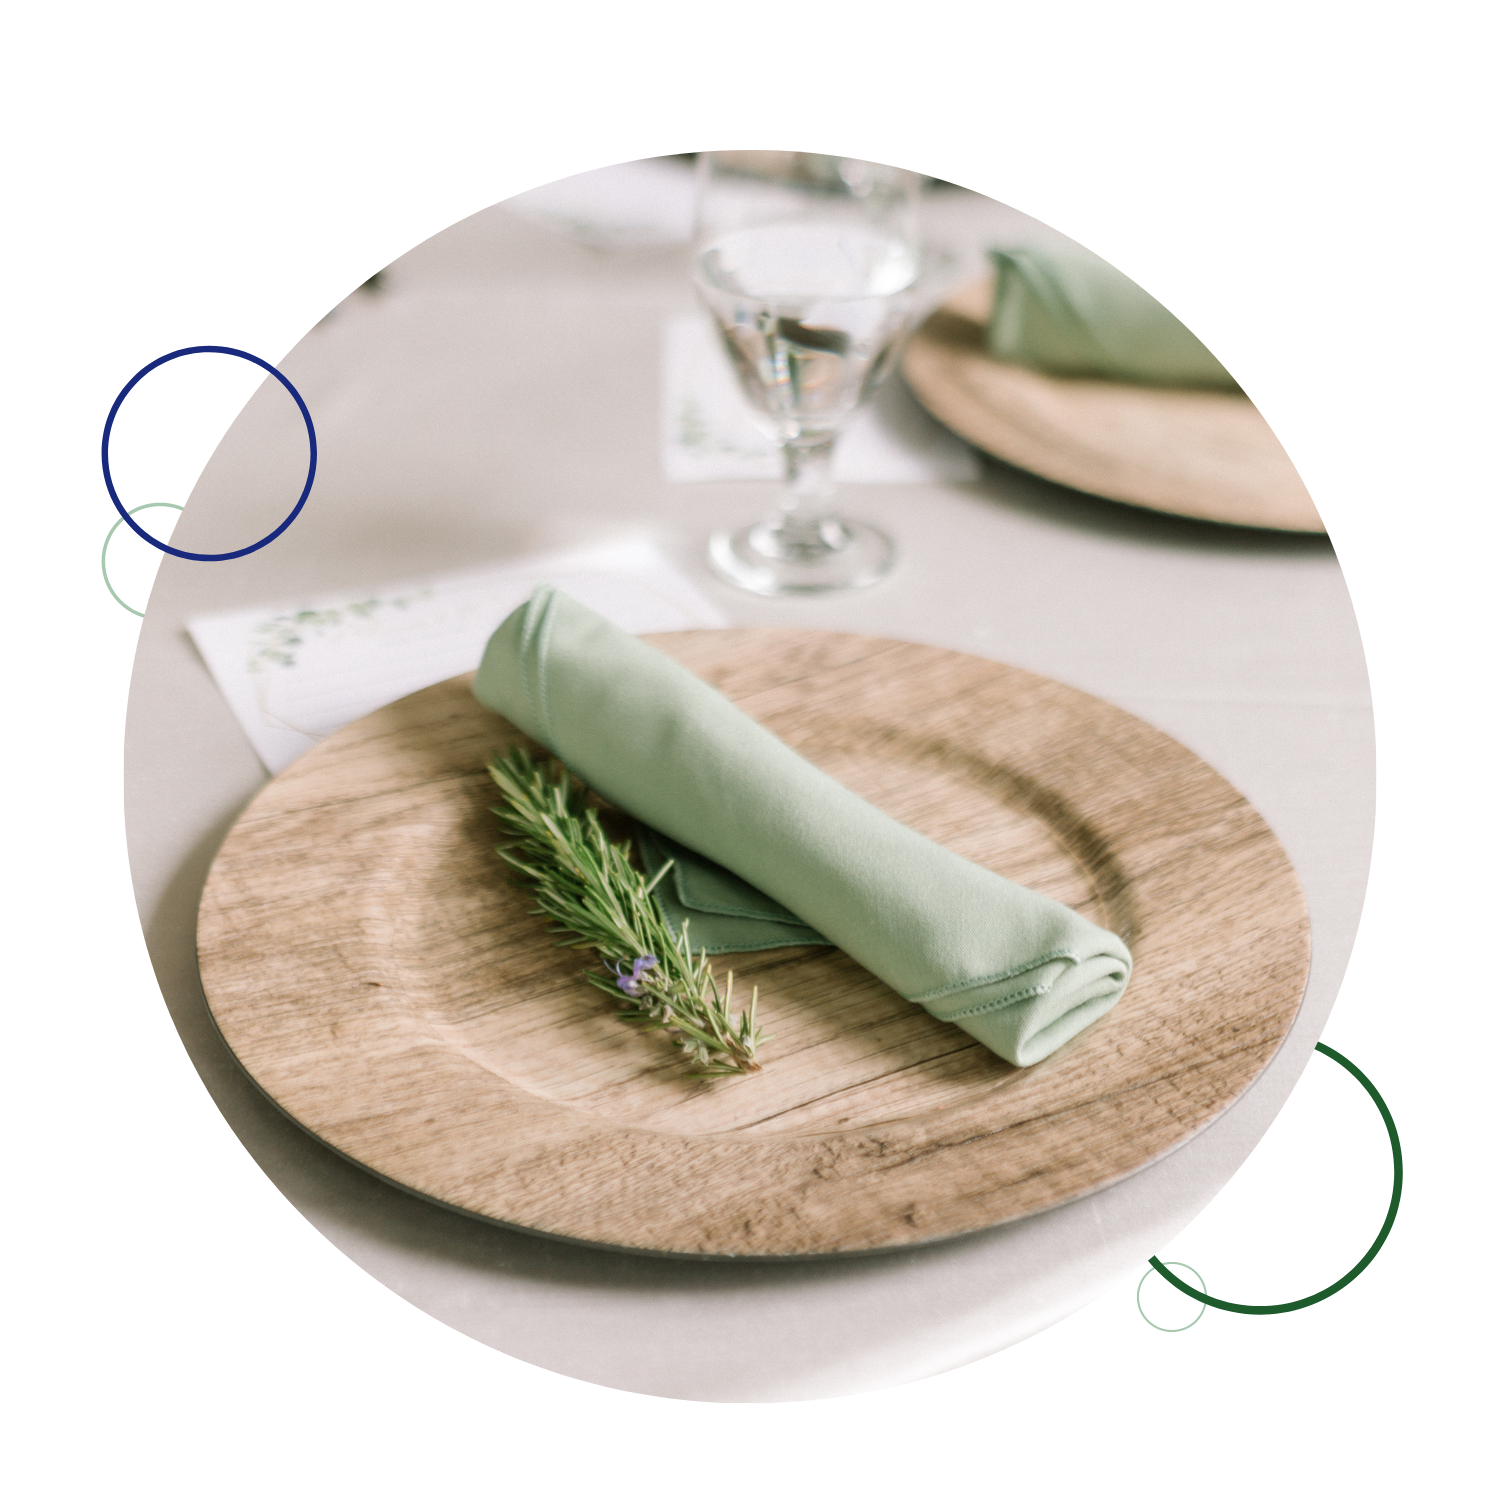 green tablecloth on wood charger